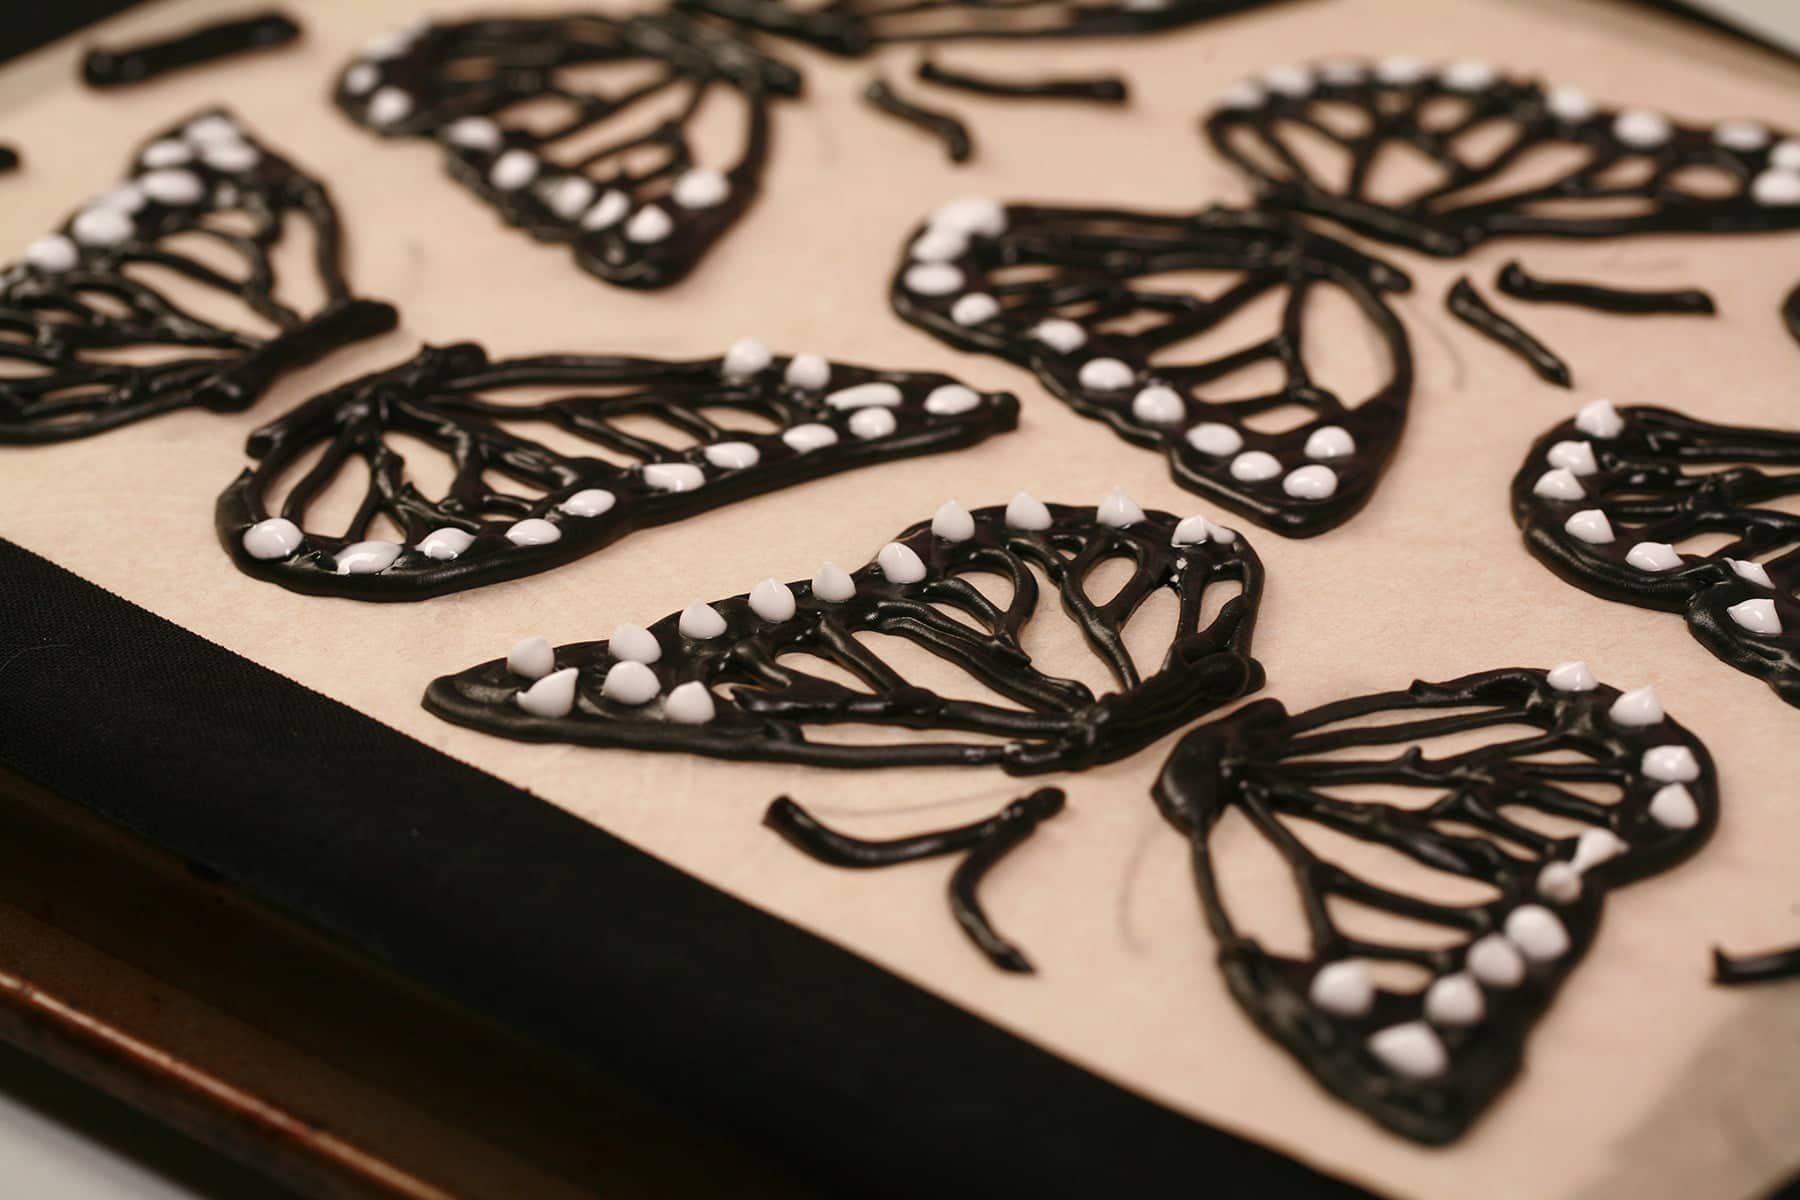 A close up view of black and white frosting outlines of monarch butterfly wings, piped on the back of a baking sheet.